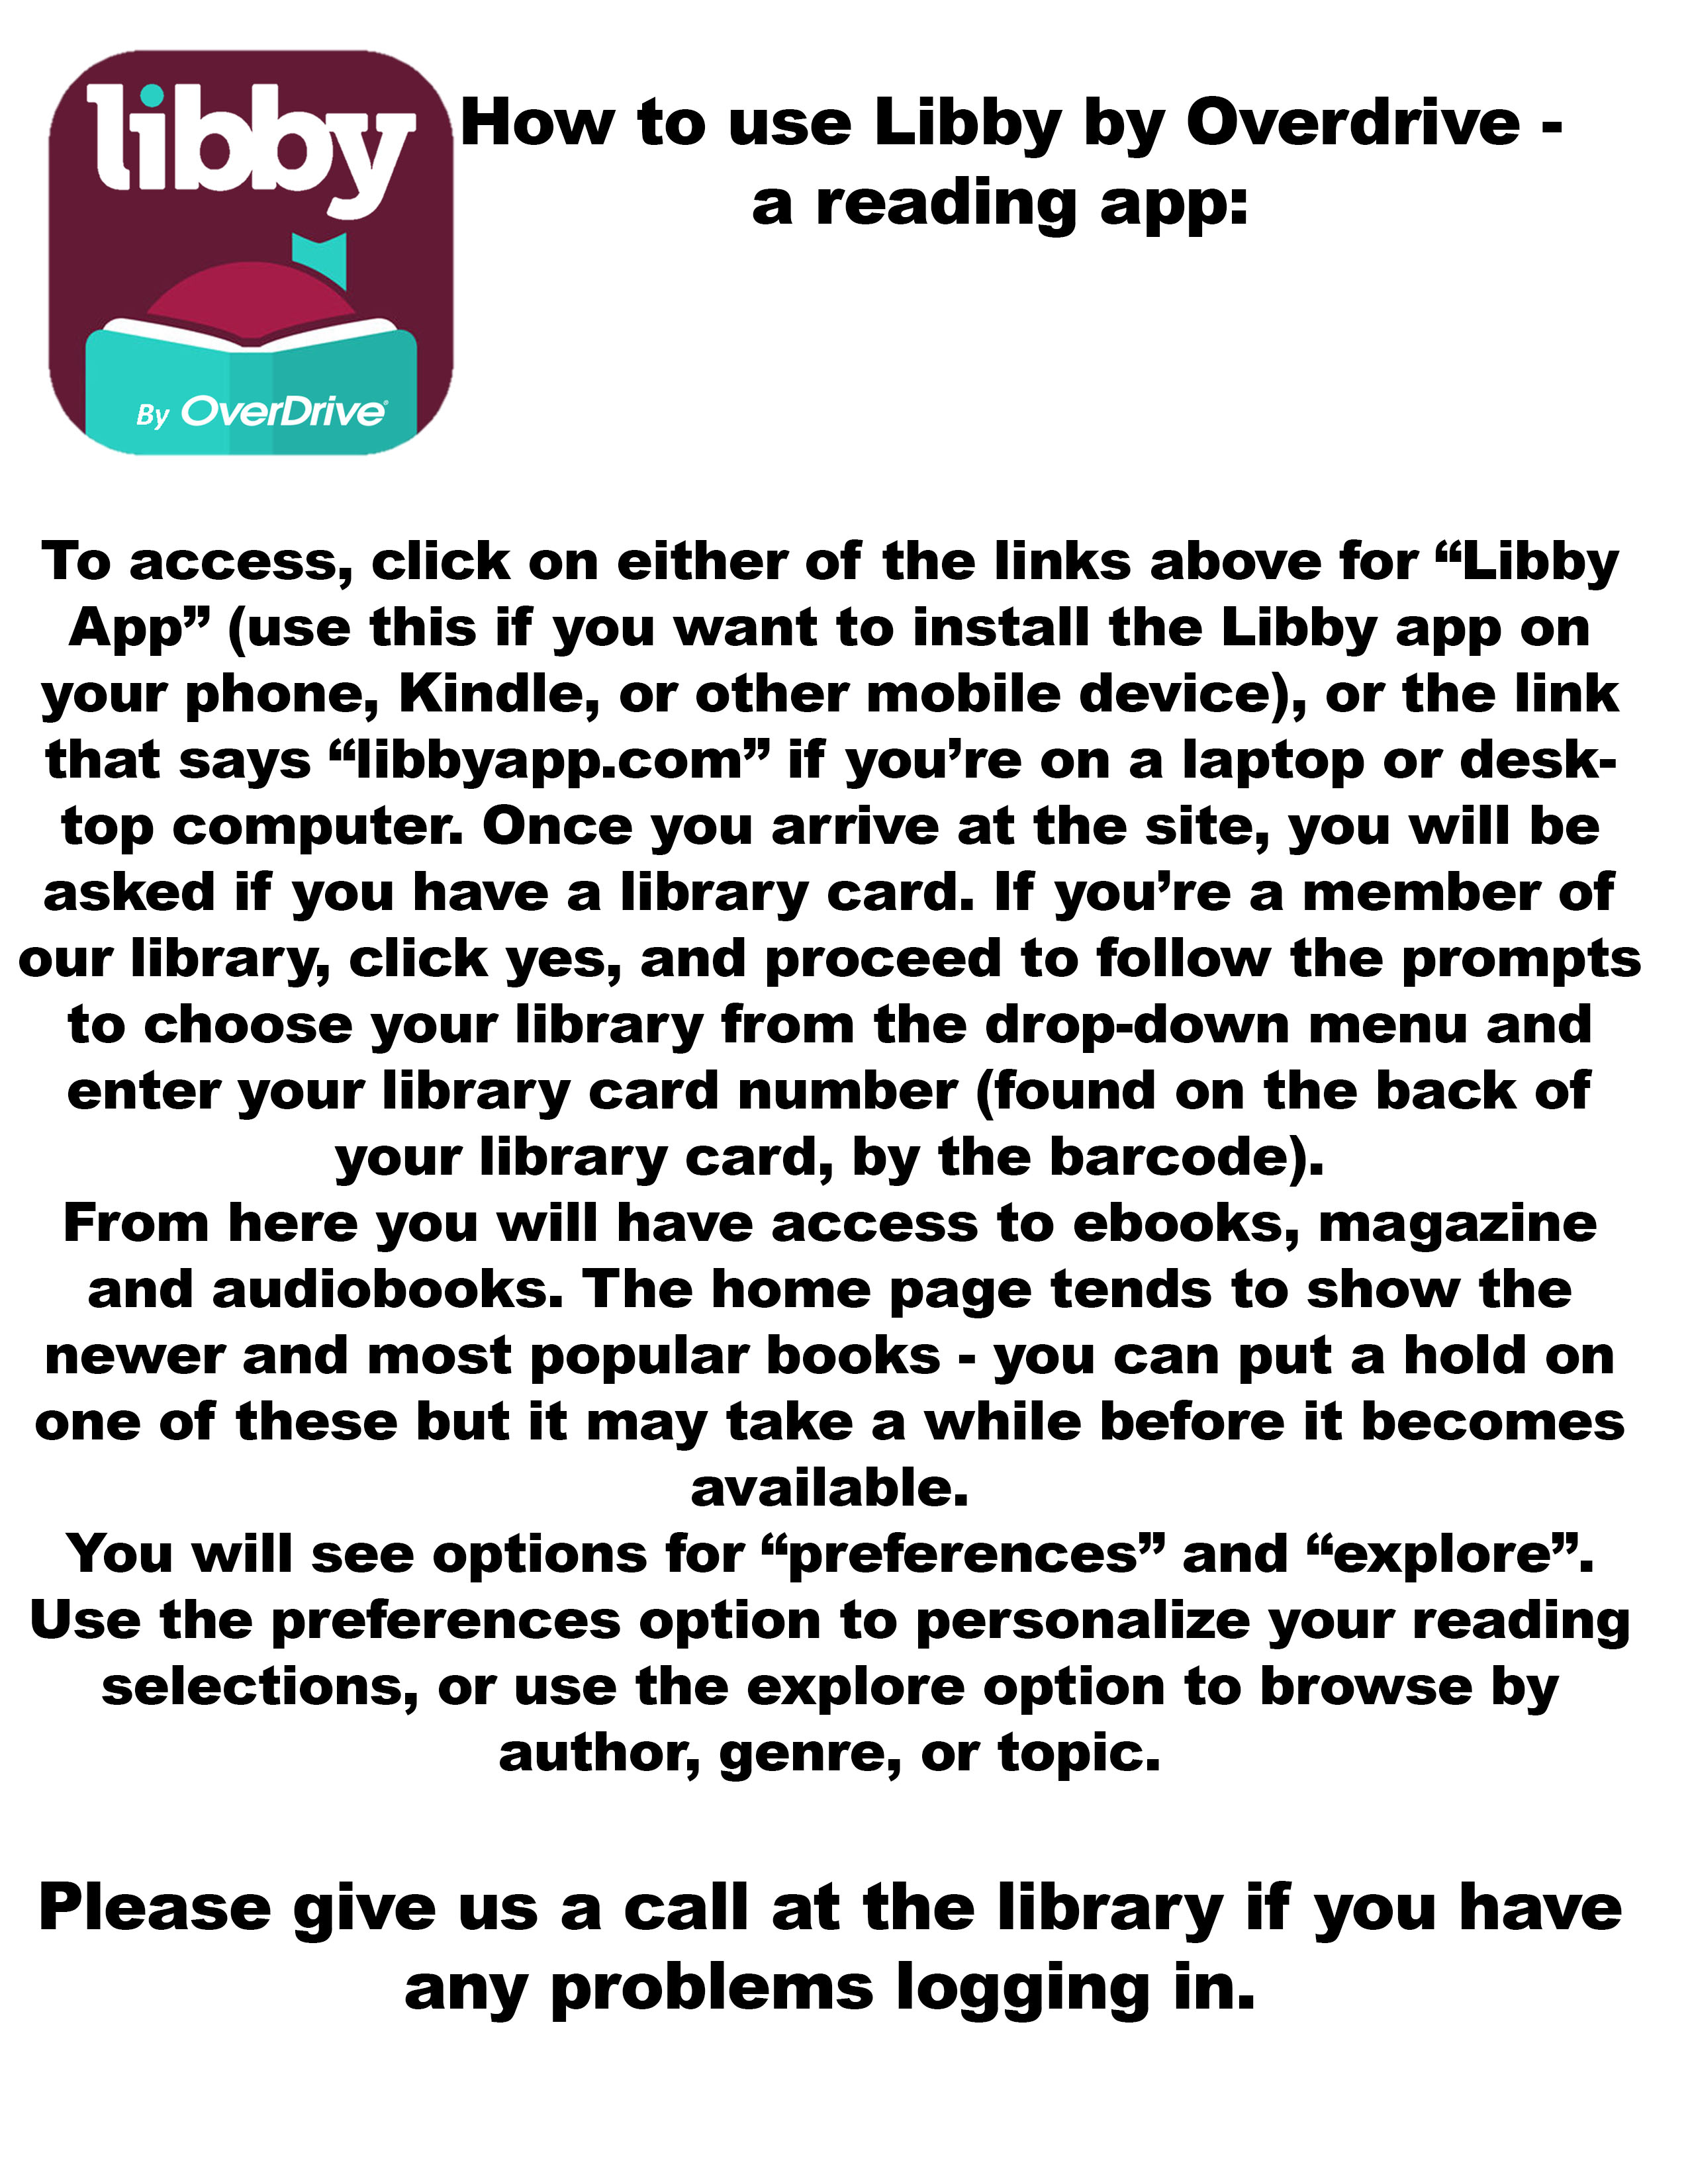 Poster describing the steps to logging into the Libyy by Overdrive reading app